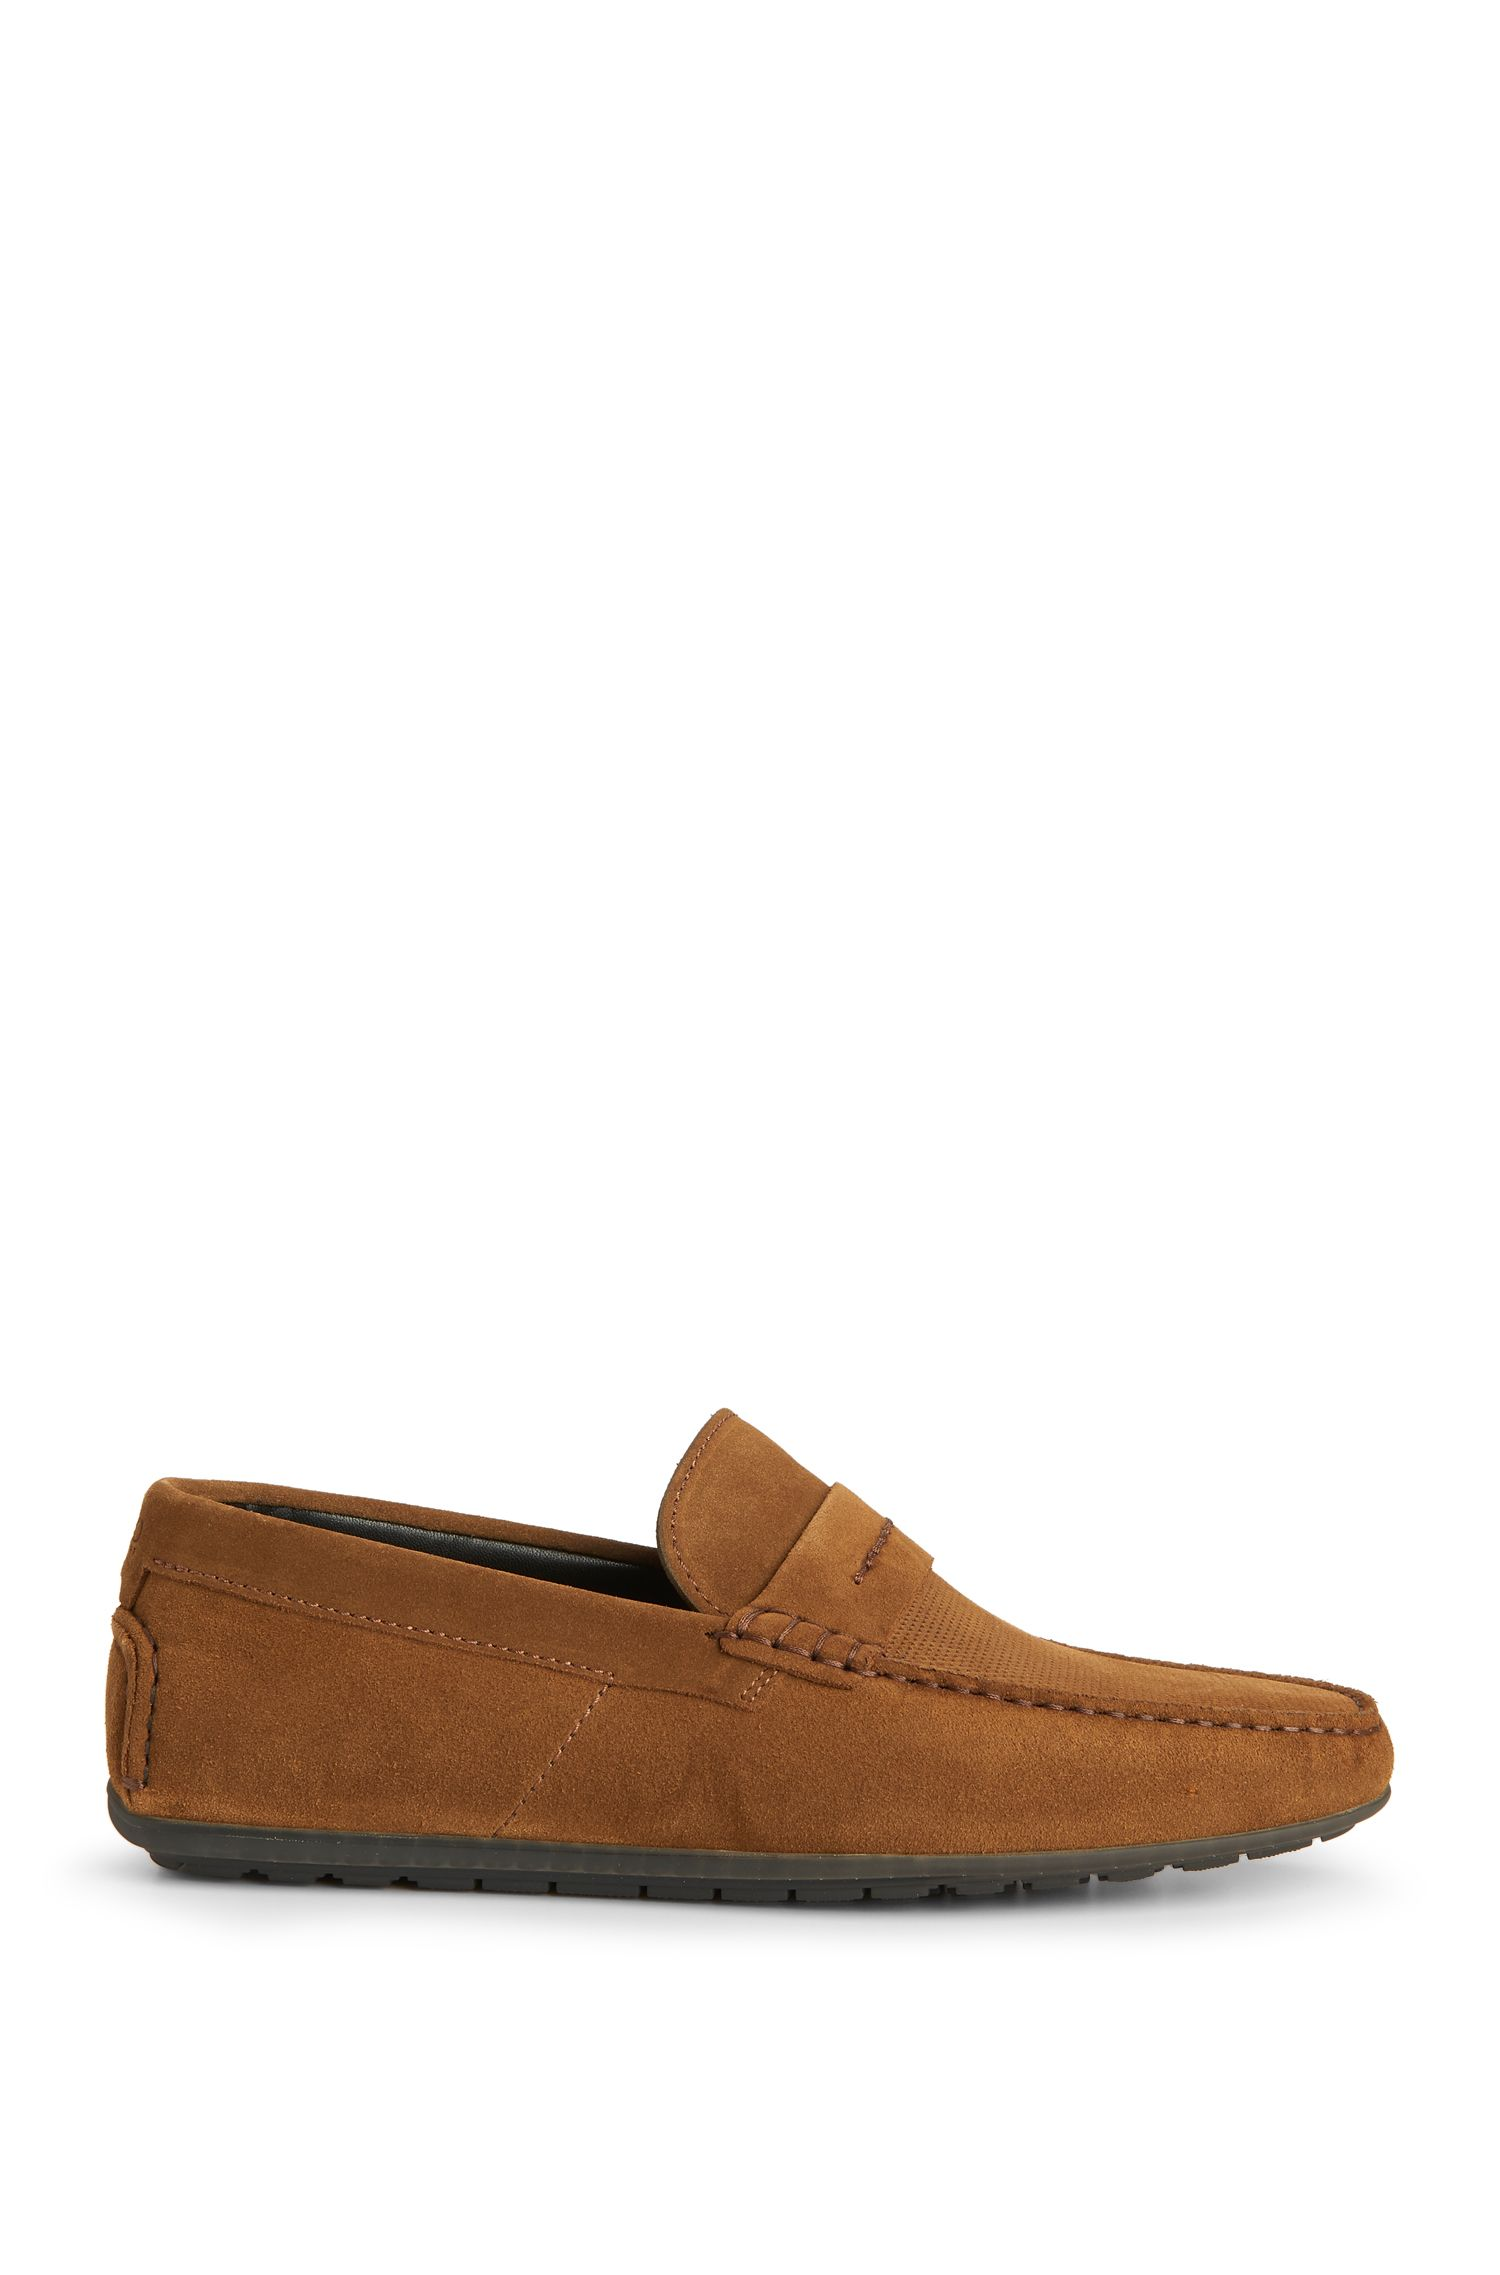 Suede Driving Loafer | Dandy Mocc Plpr, Brown